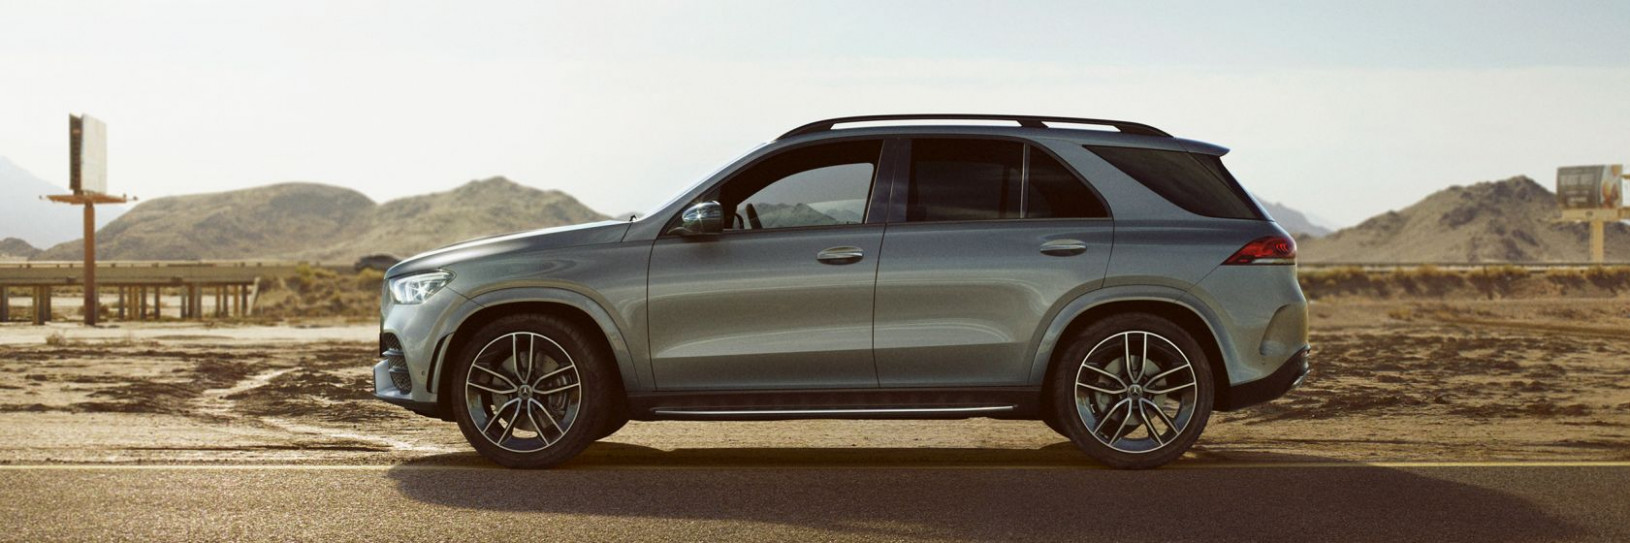 Mercedes-Benz GLE SUV: Inspiration